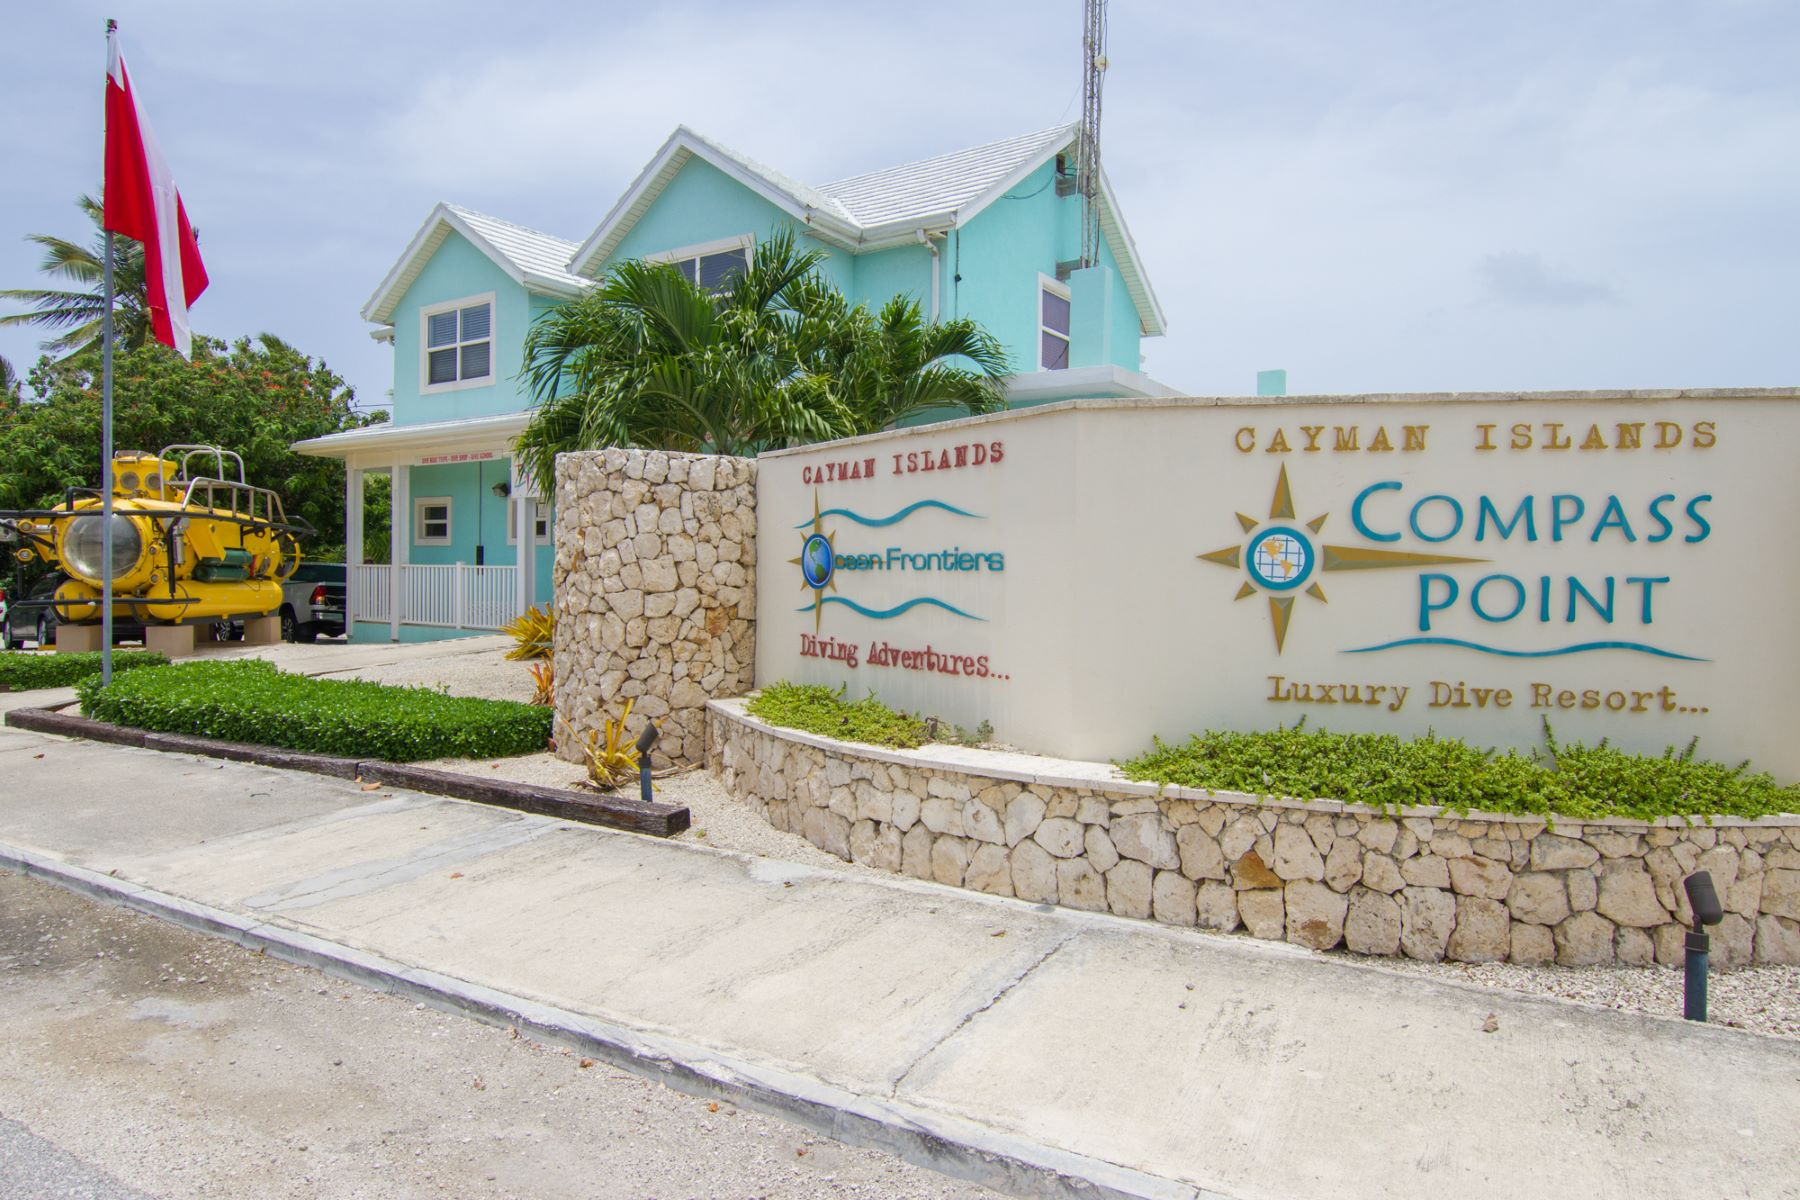 Additional photo for property listing at Compass Point Fractional Compass Point #224 Austin Conolly Dr East End,  KY1 Cayman Islands